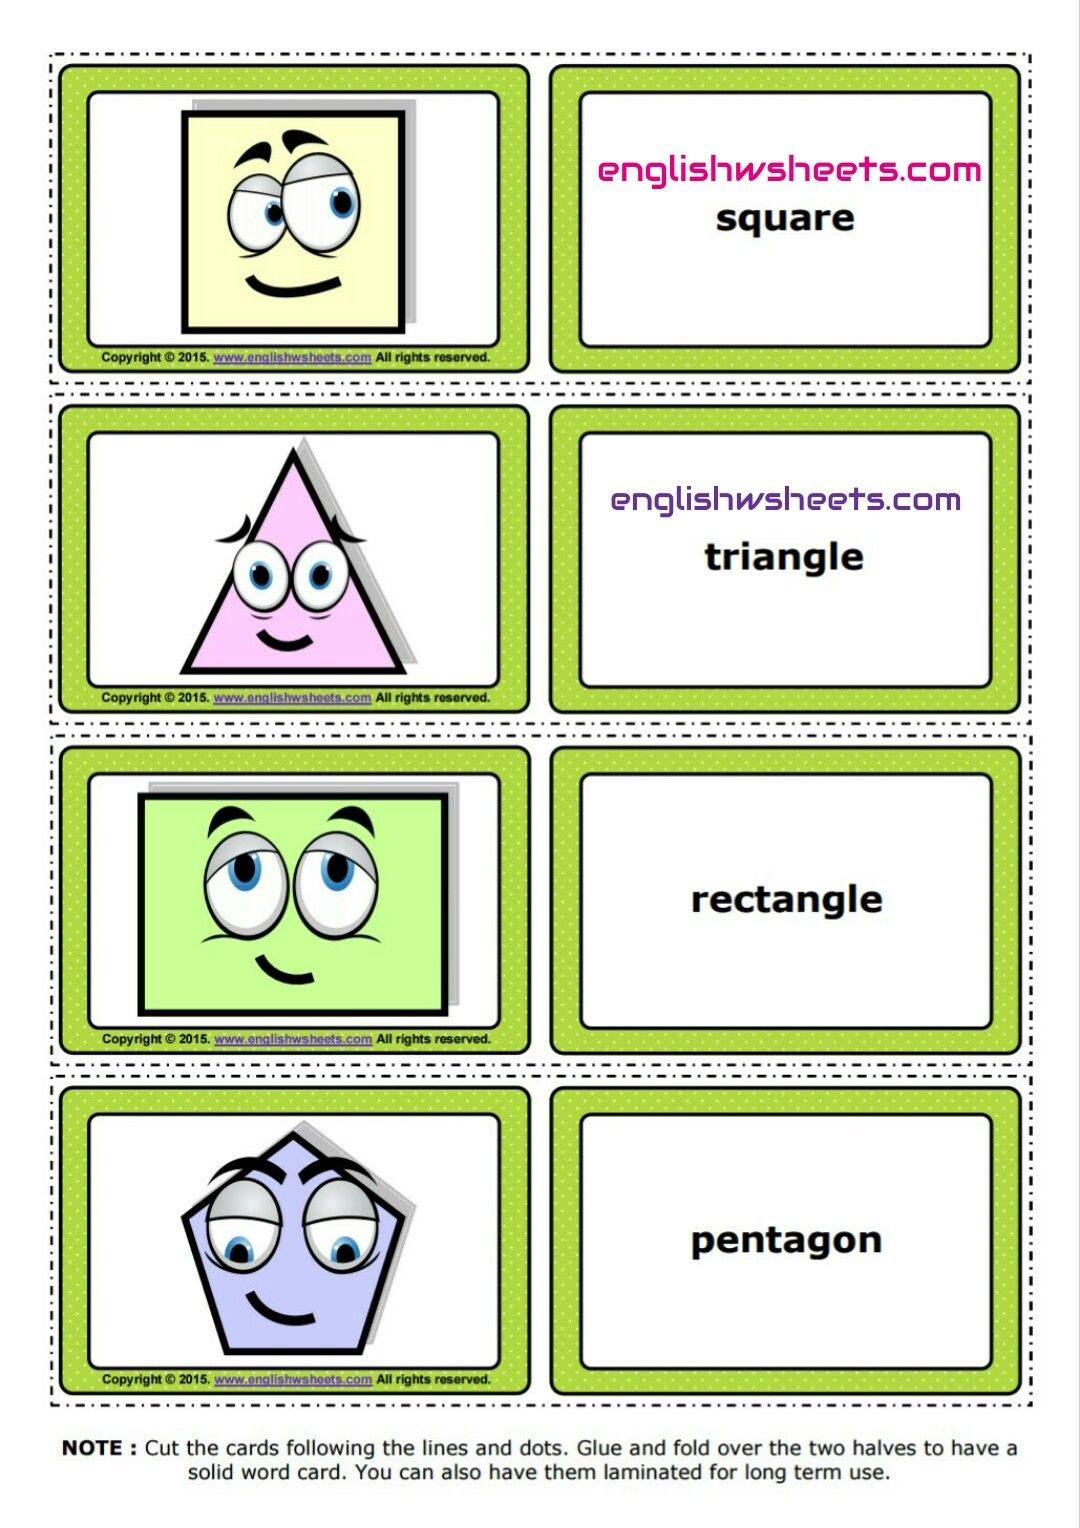 Esl Printable Shapes Flashcards And Game Cards For Kids Esl Printable Shapes Flashcards